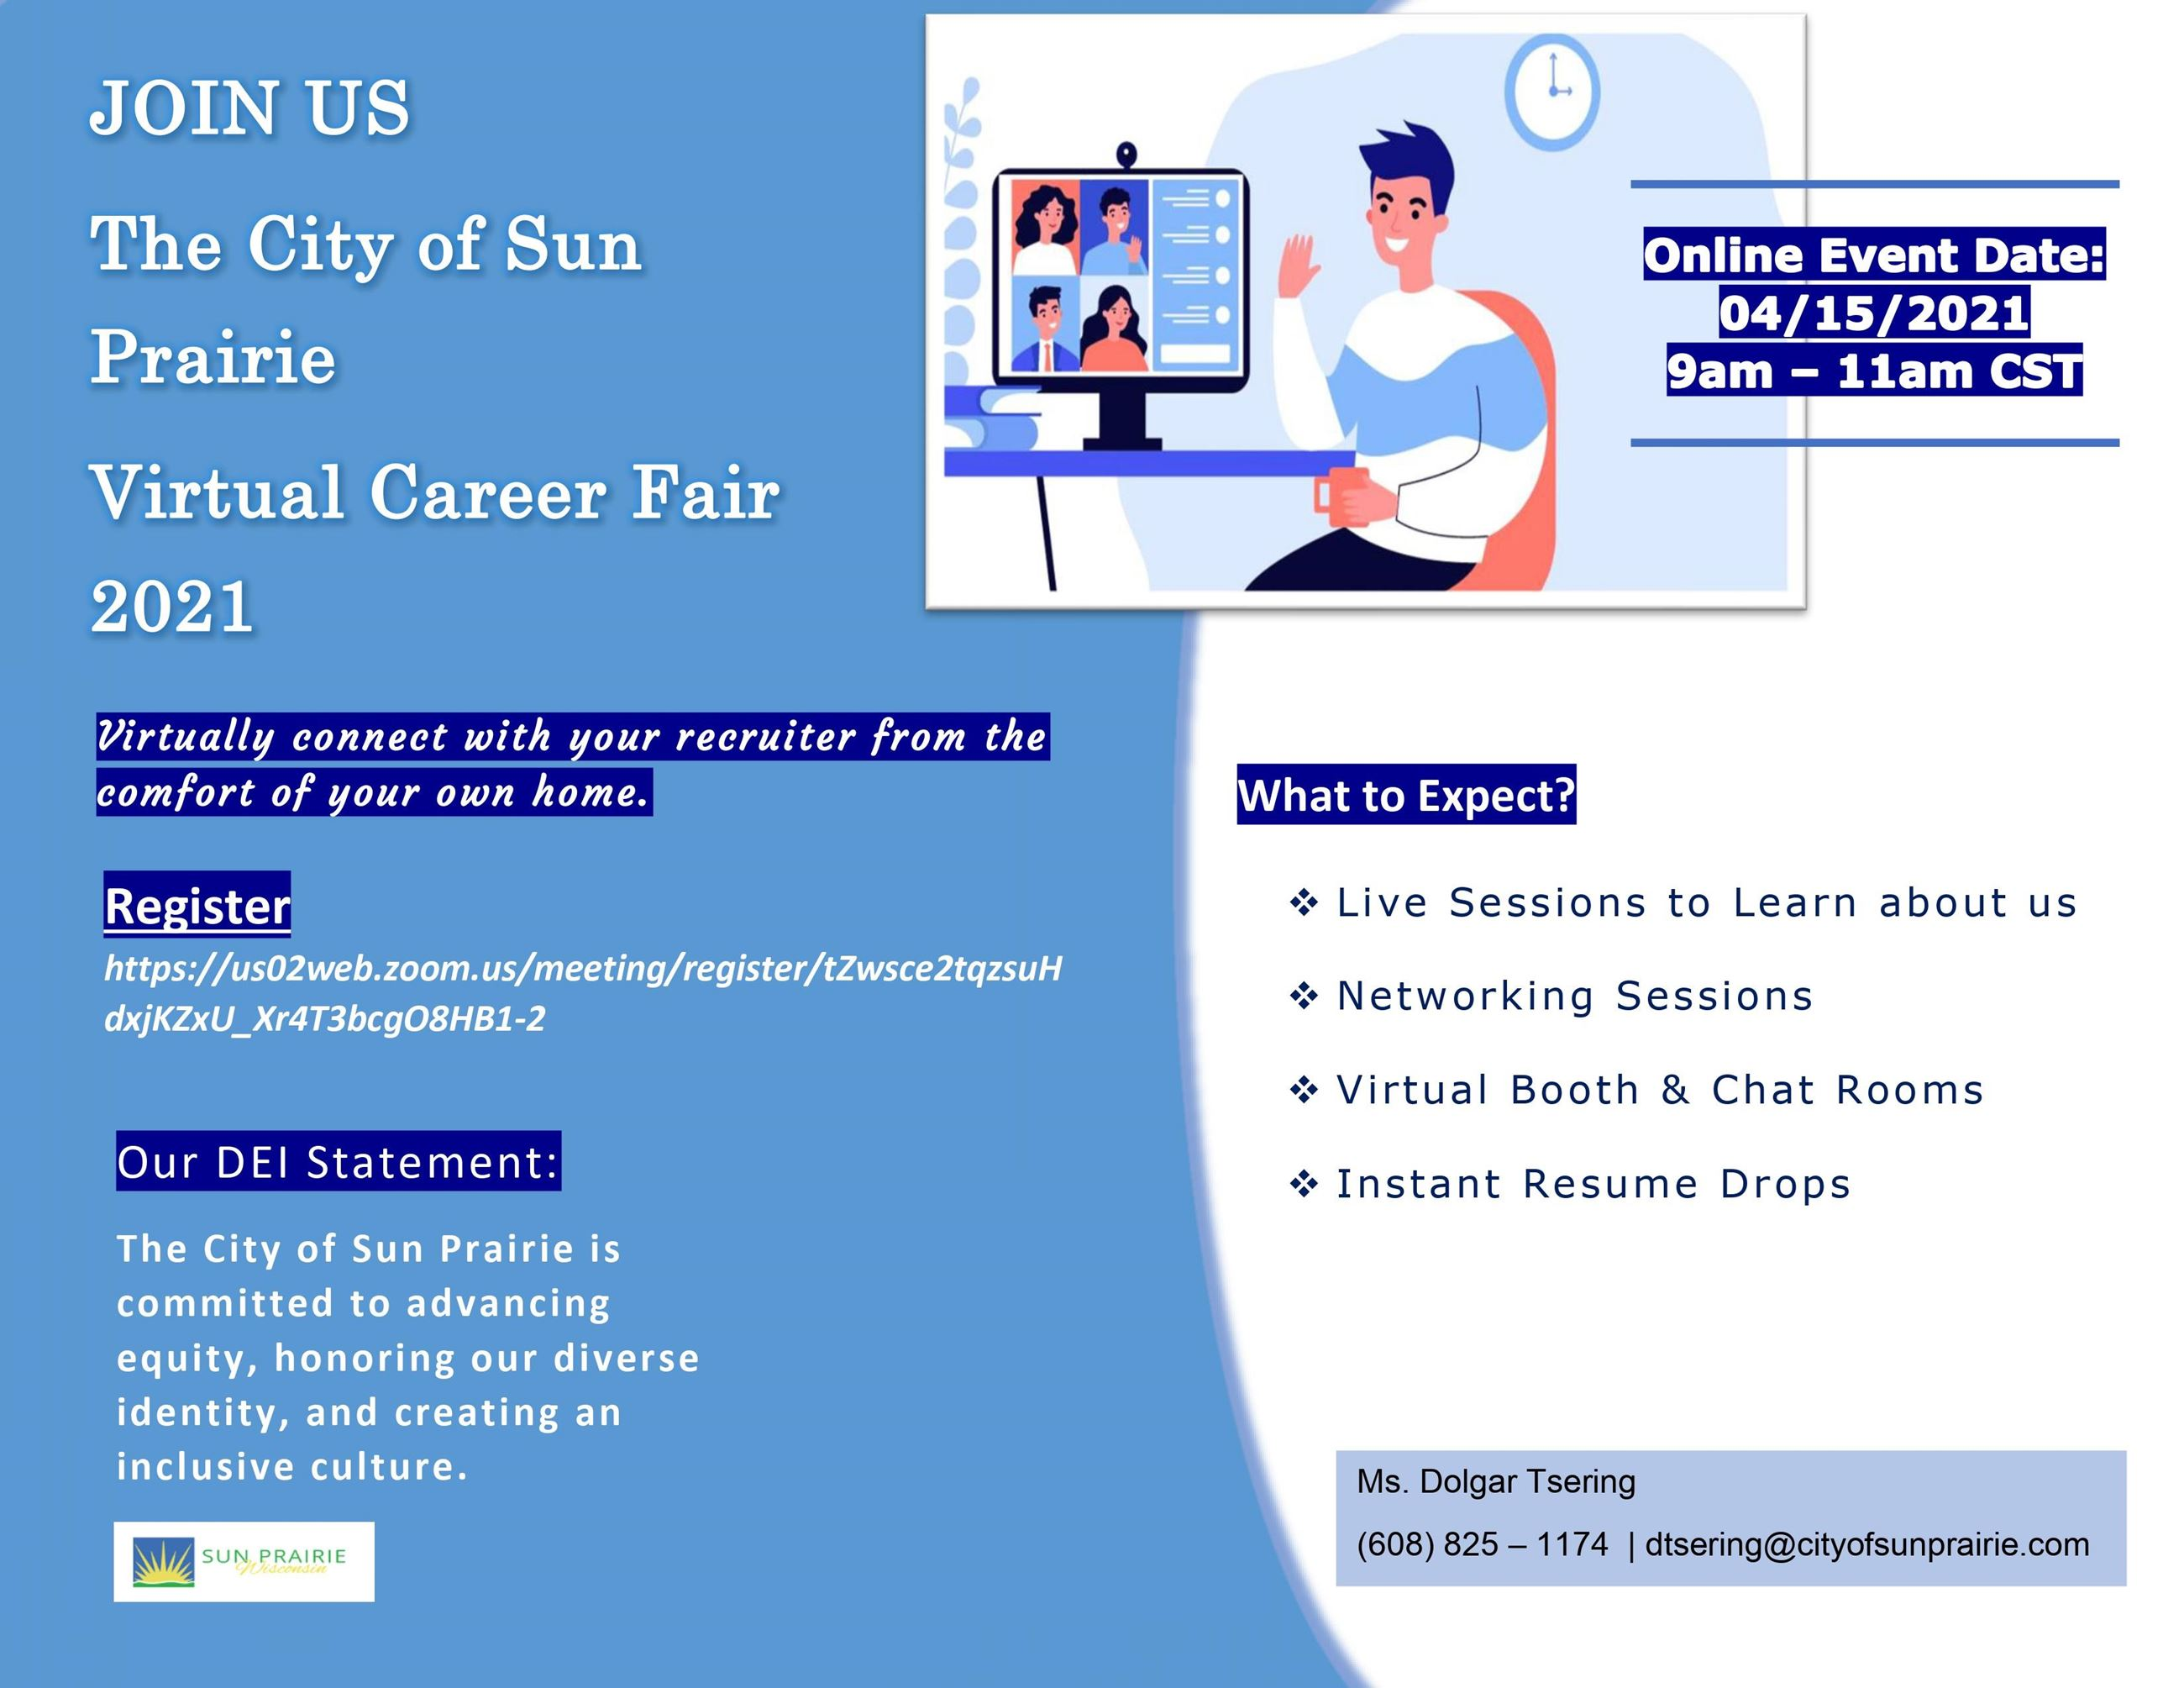 Virtual Career Fair 2021